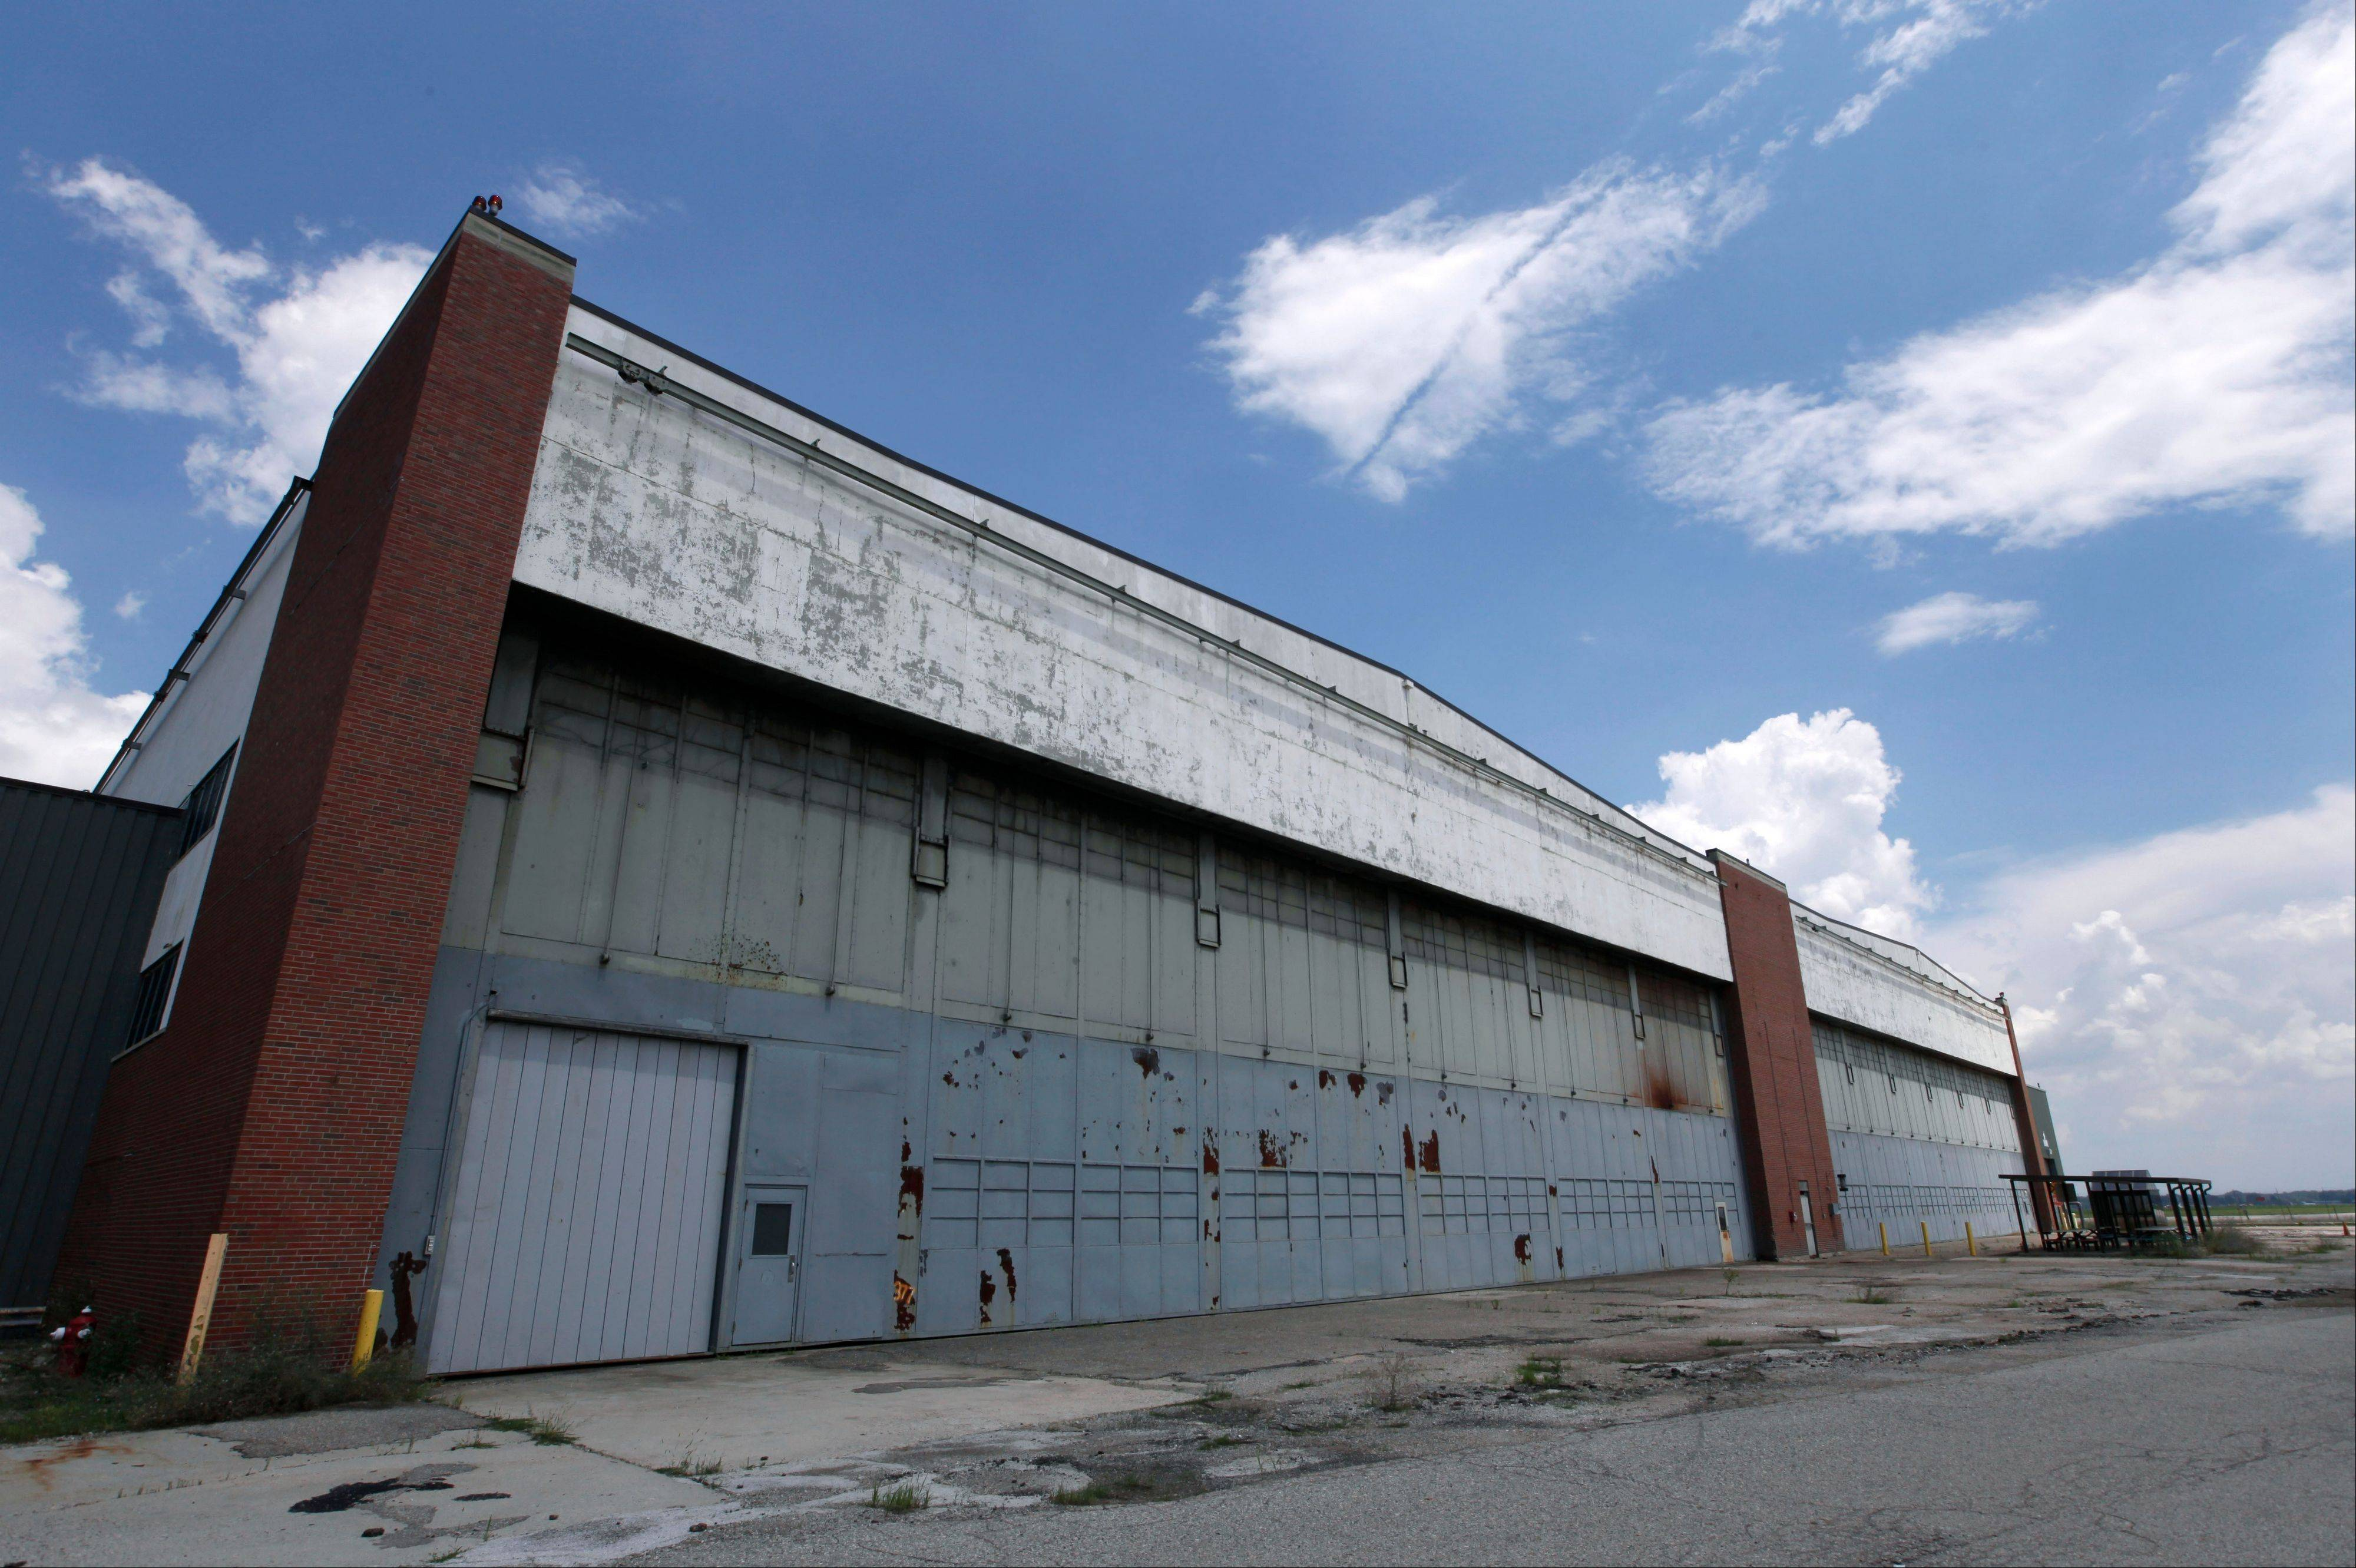 Part of the former Willow Run Bomber Plant at Willow Run Airport in Ypsilanti Township, Mich.